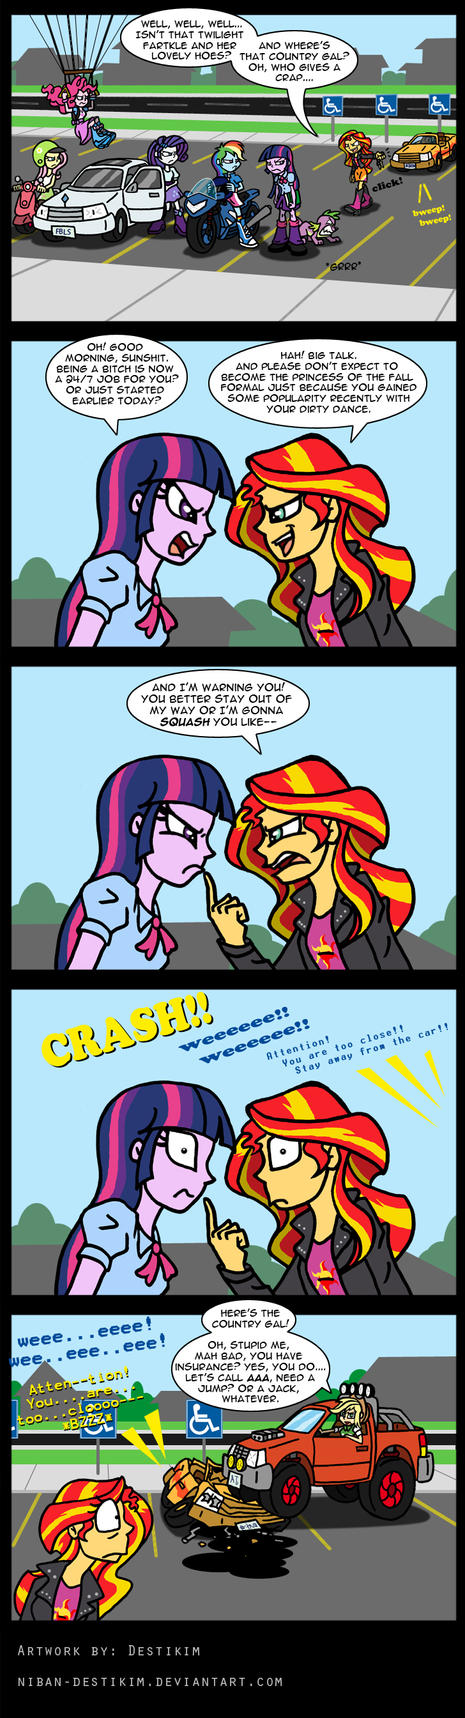 Sunset Shiver by Niban-Destikim